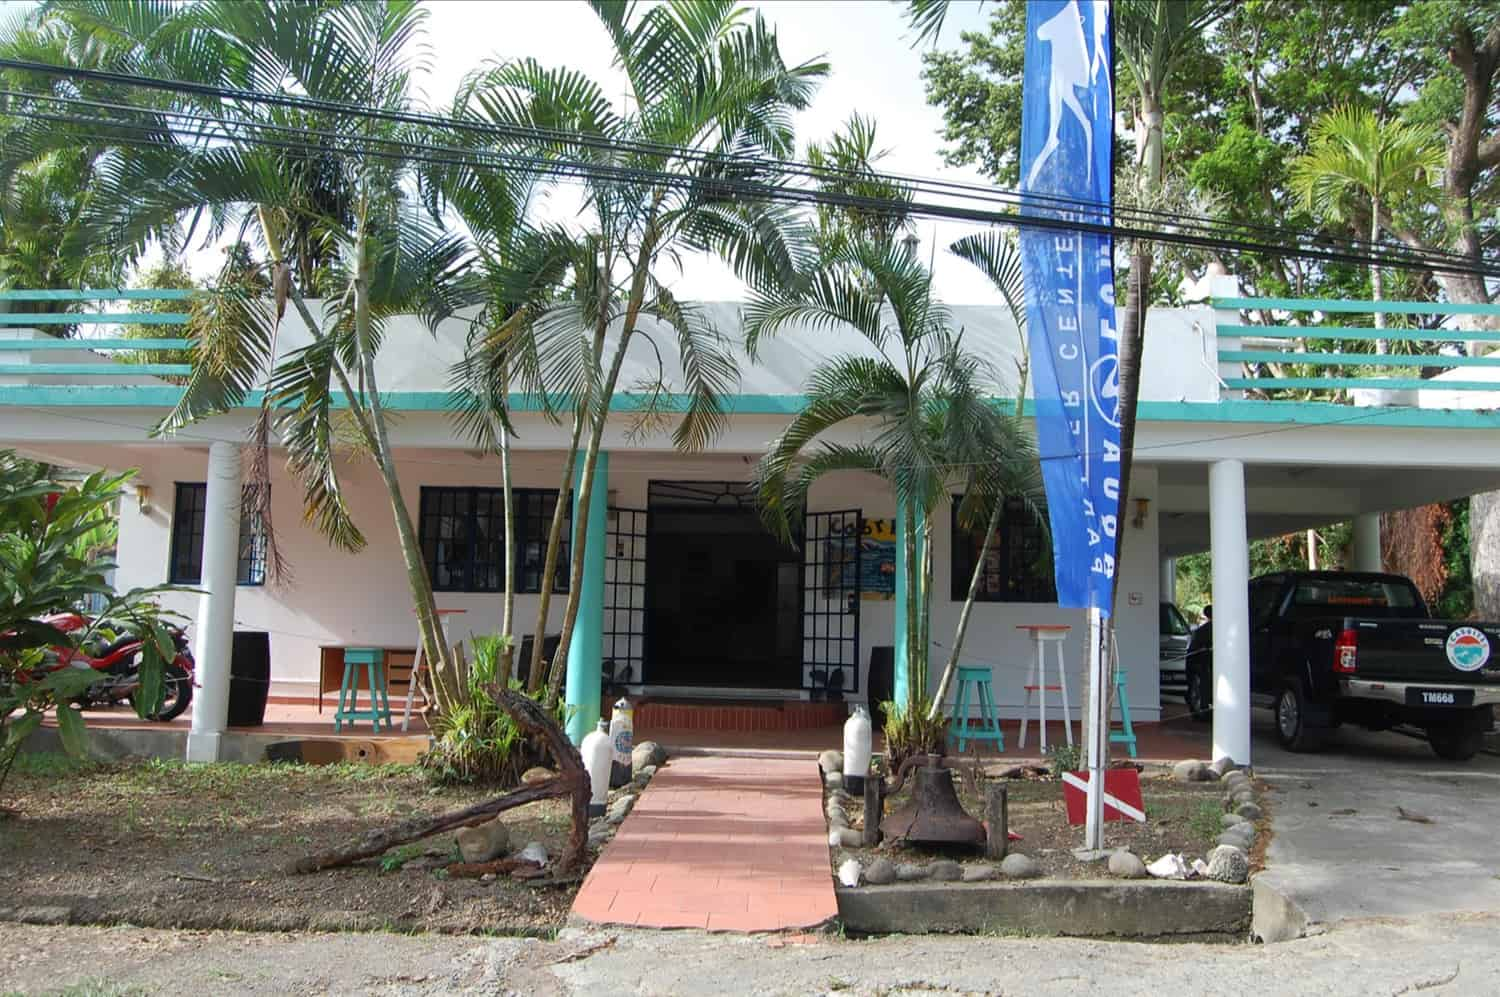 Hotel The Champs + Cabrits Dive Center